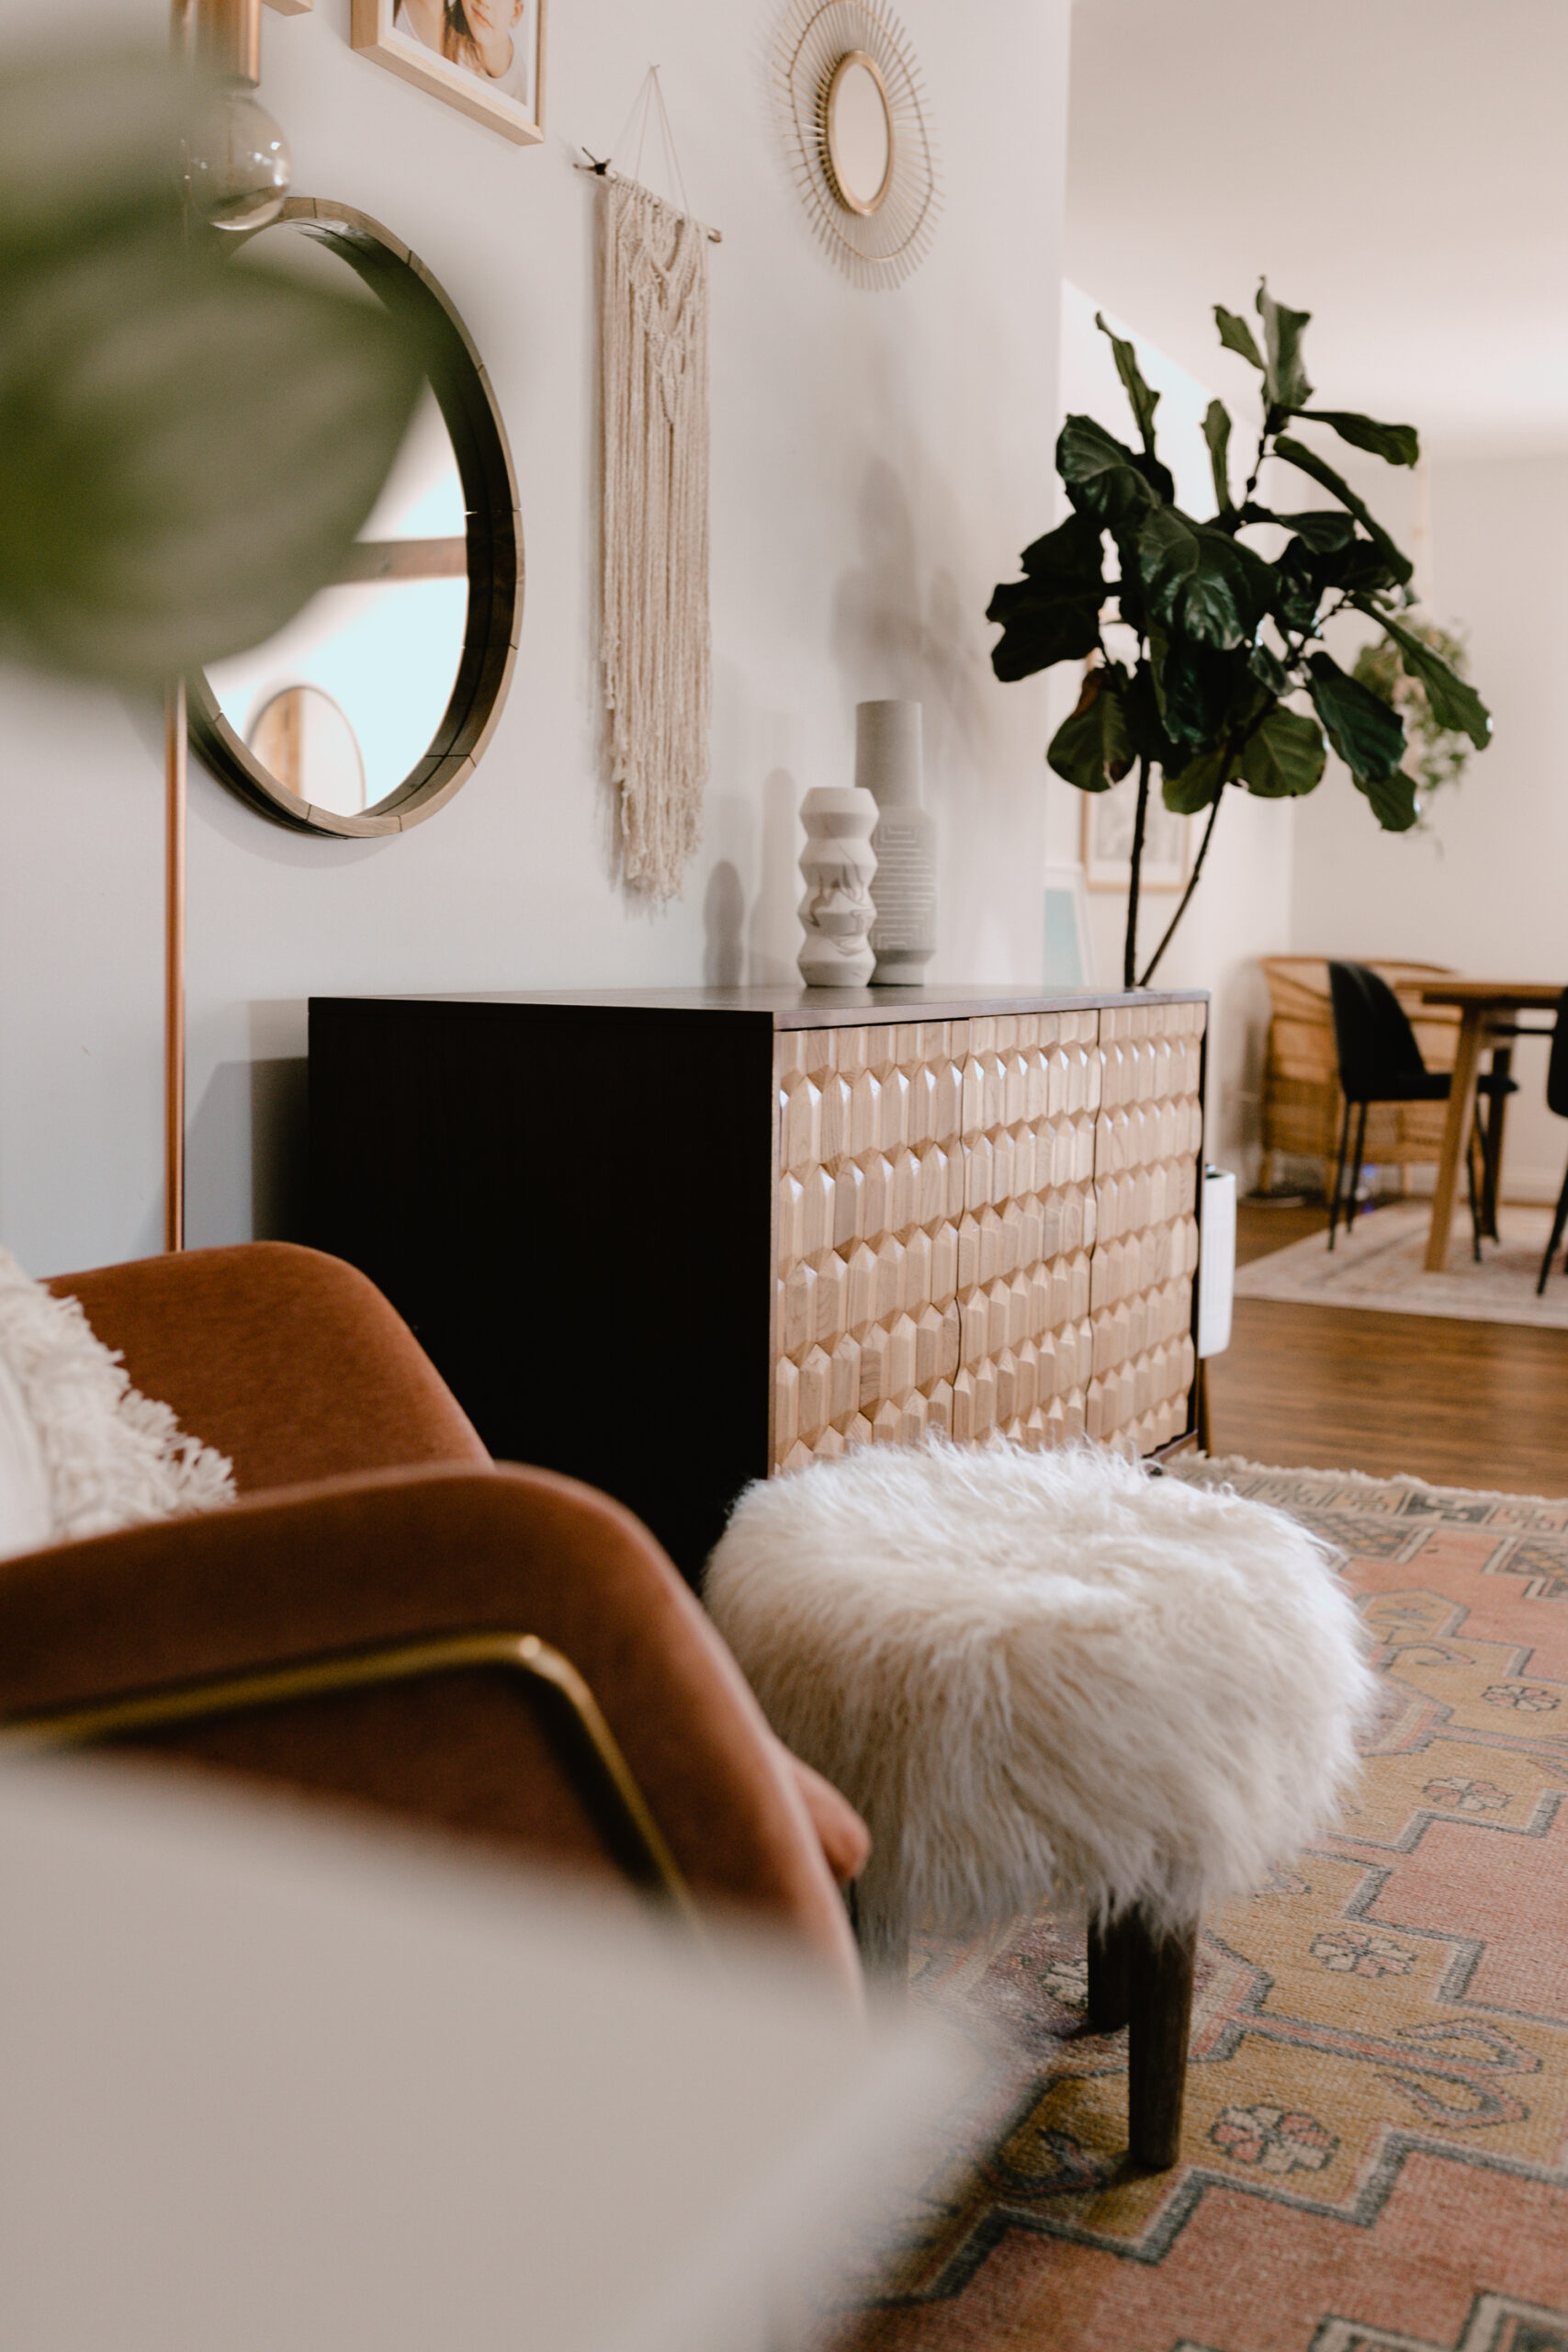 details from our updated awkward corner in our open-concept floor plan in a renovated older home. #thelovedesignedlife #theldlhome #sideboard #homedesign #beautifulspaces